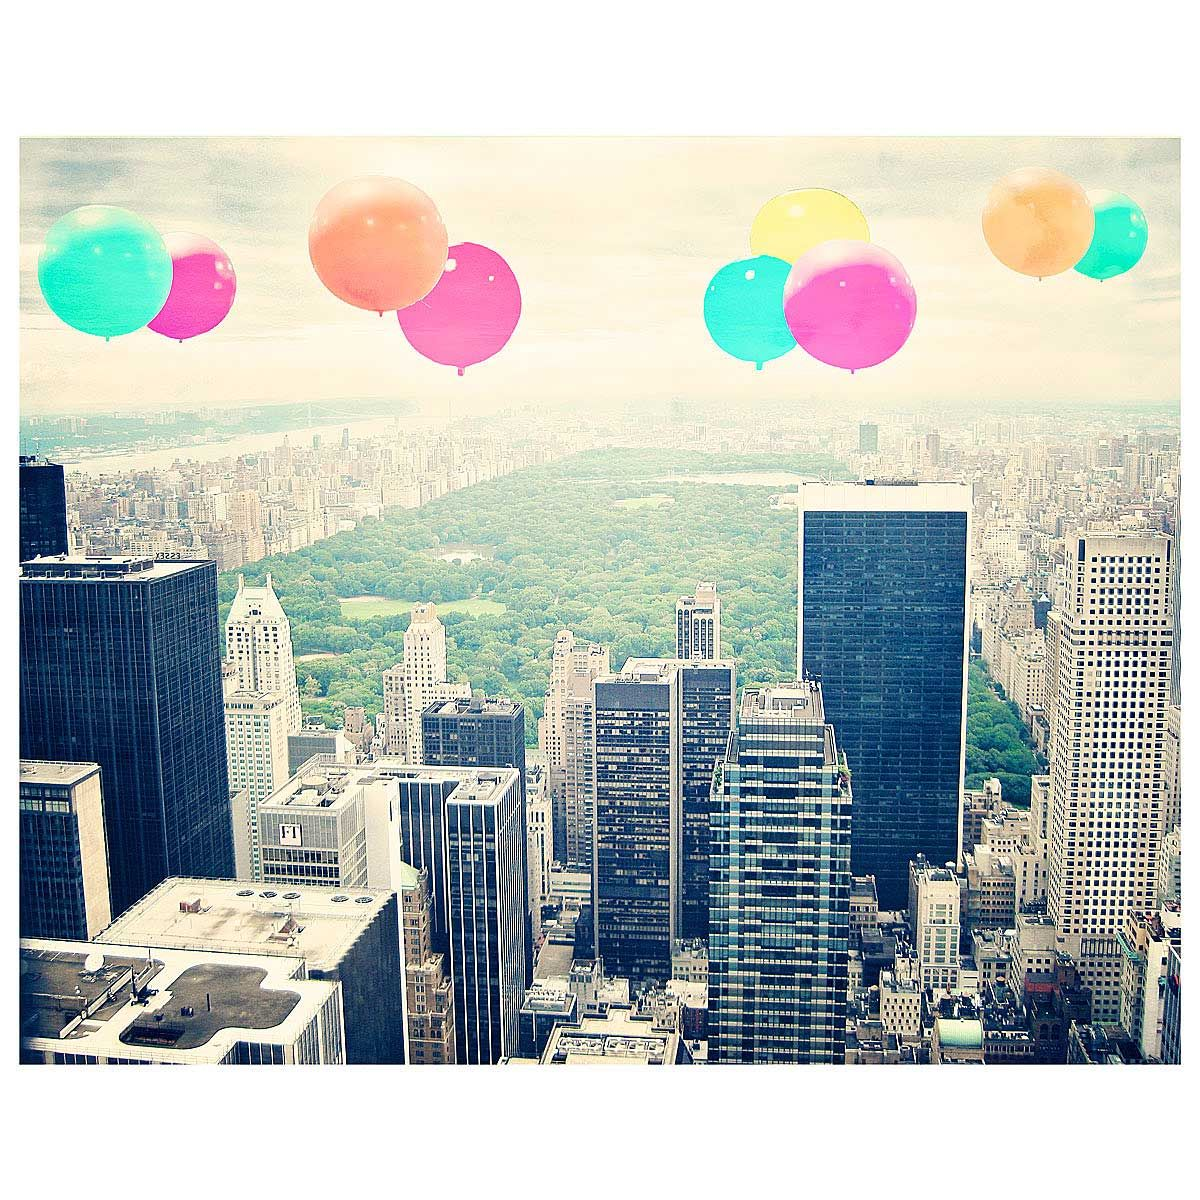 This vintage-inspired photographic art shows candy-colored balloons floating over New York City's Central Park.